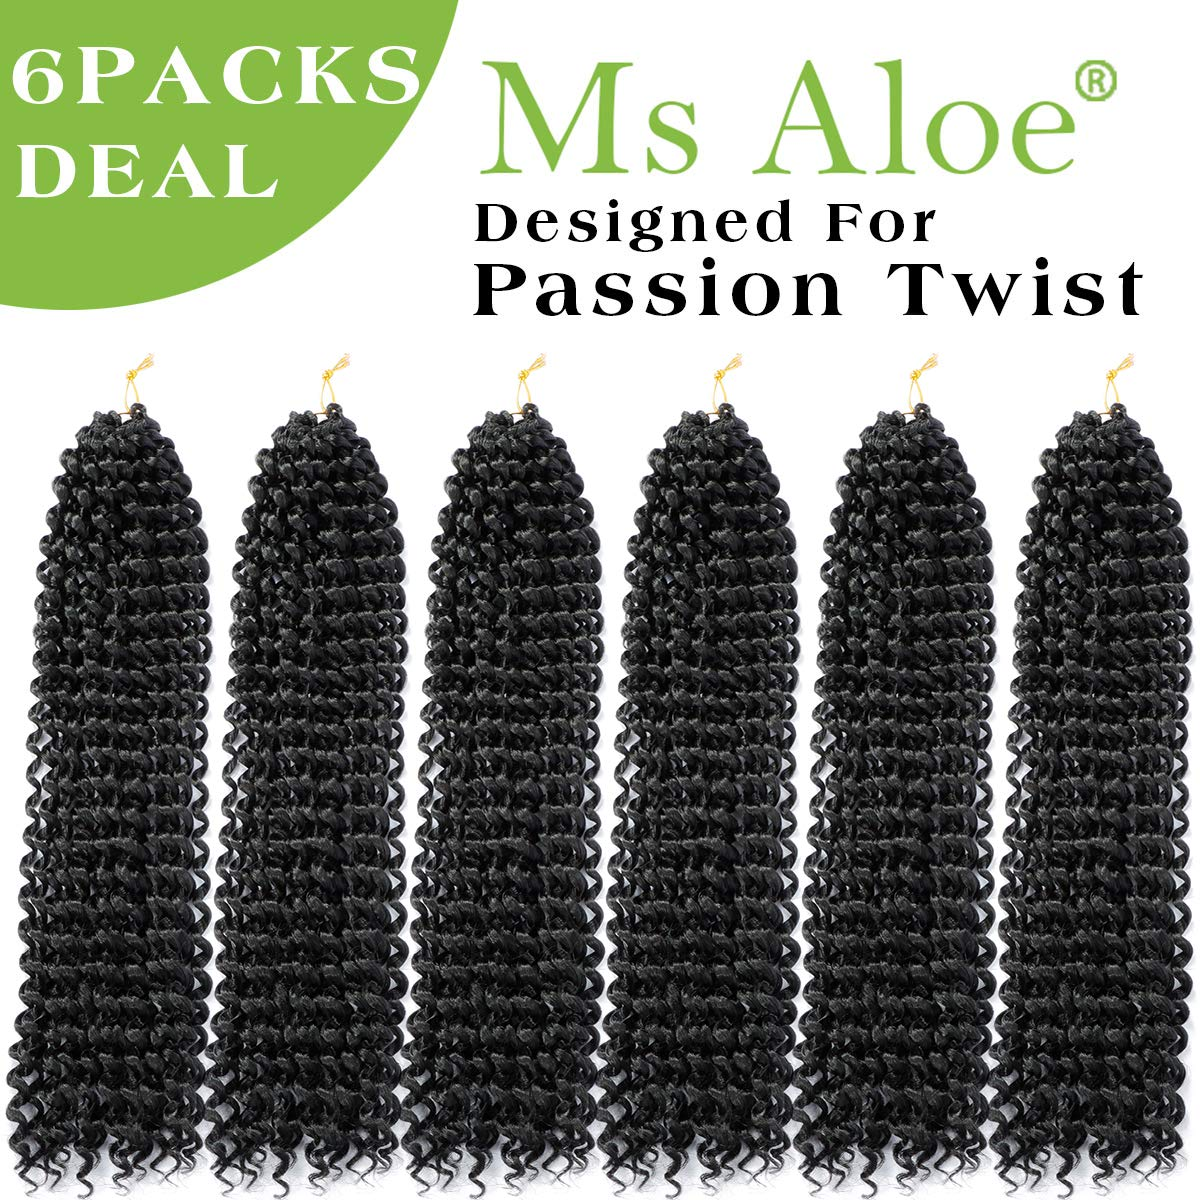 Passion Twist Hair 18inch Black Water Wave Crochet Hair